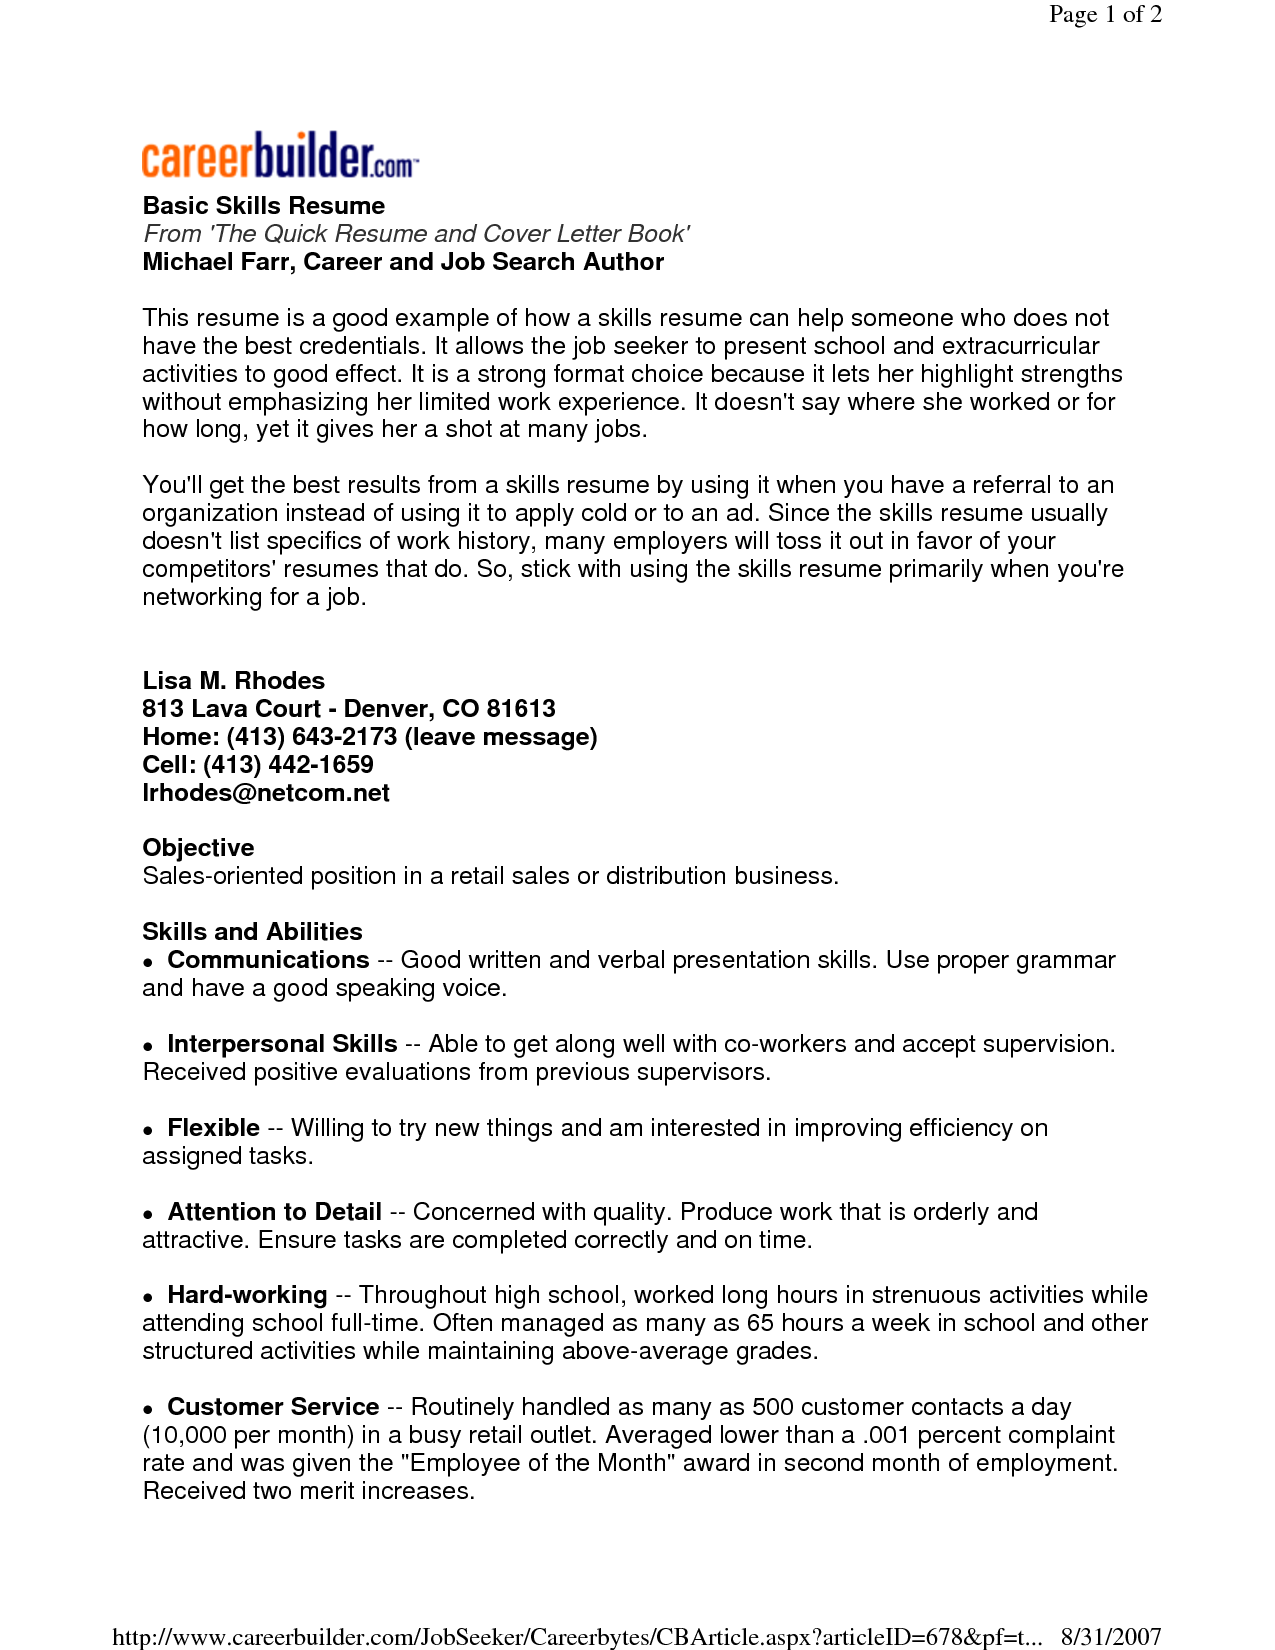 Resume Examples Key Skills | 1-Resume Examples | Sample resume ...